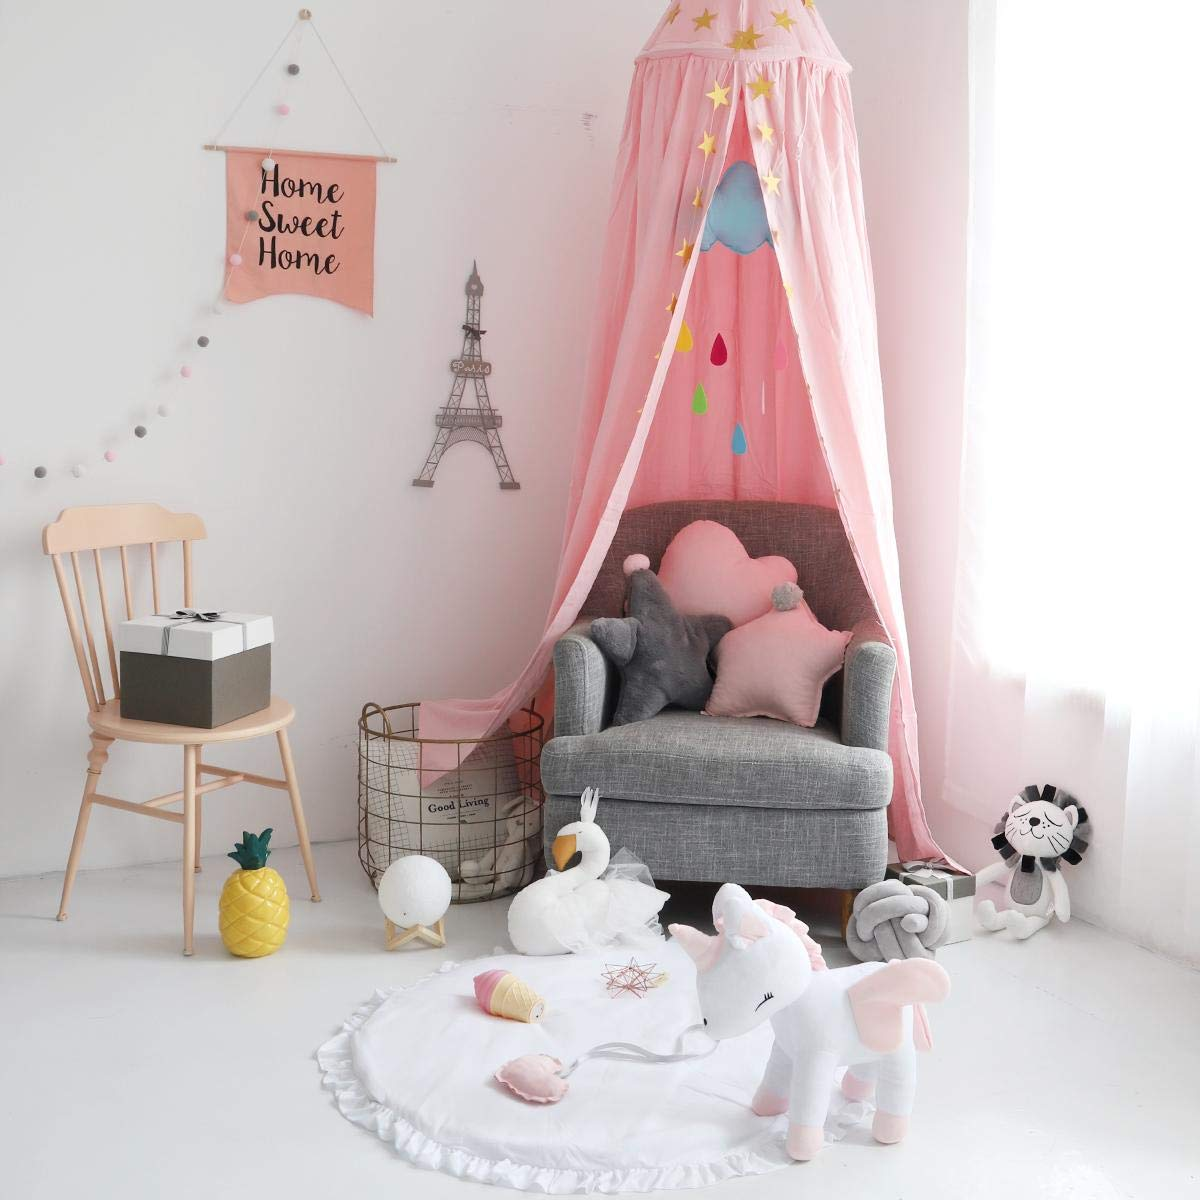 Princess Bed Canopy Mosquito Net Block Out Light Dome for Girls Kids Baby Crib, Castle Play Tent Hanging Over Decoration Nook Reading Furniture, Cotton Canvas, Height-95 inch (Pink) (Princes Pink) Wenscha